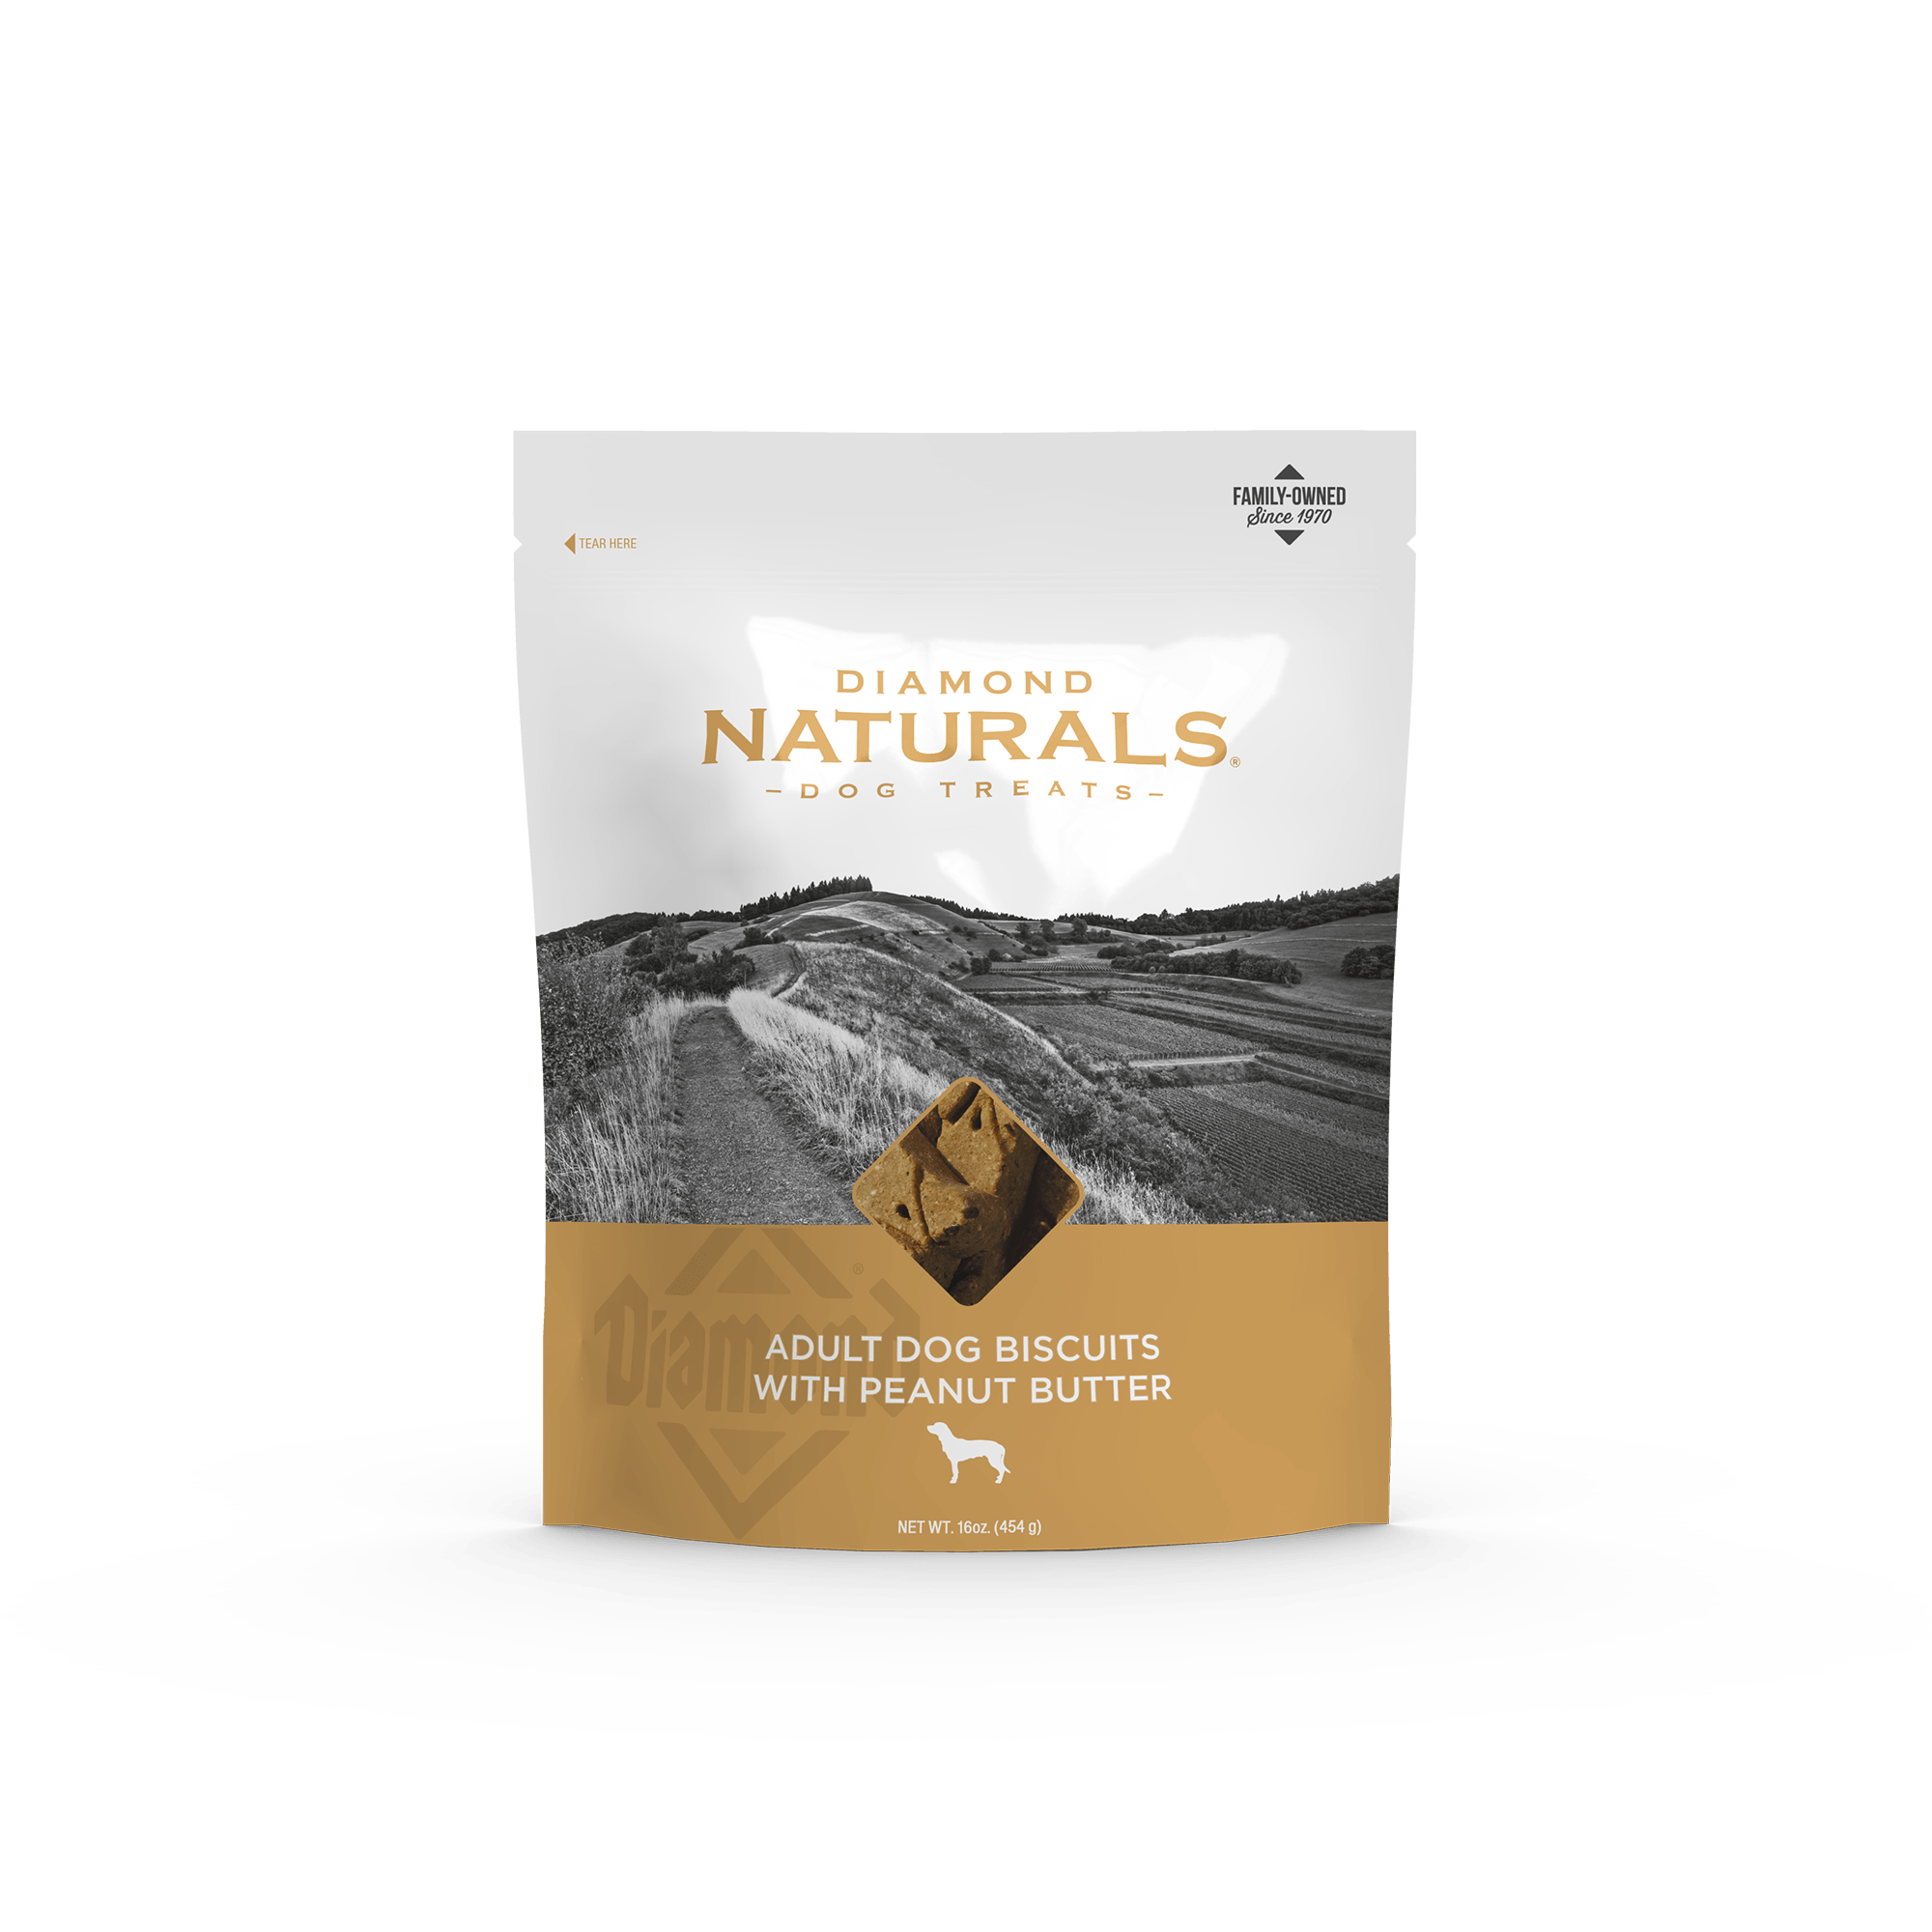 peanut butter biscuits | Diamond Naturals